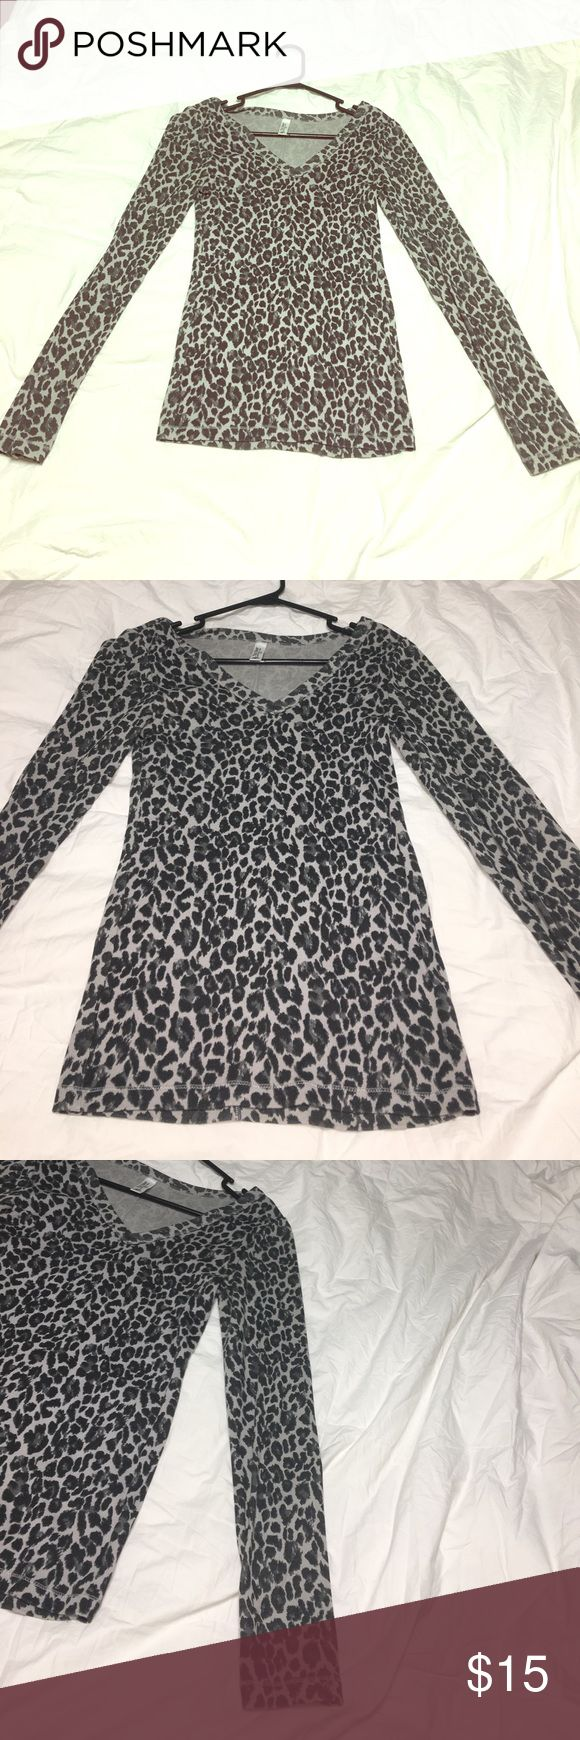 VICTORIAS SECRET - ANIMAL PRINT LONG SLEEVE TOP Bought this online from VS! You can dress it up or down! 60% Cotton 40% Polyester! Perfect condition! Victoria's Secret Tops